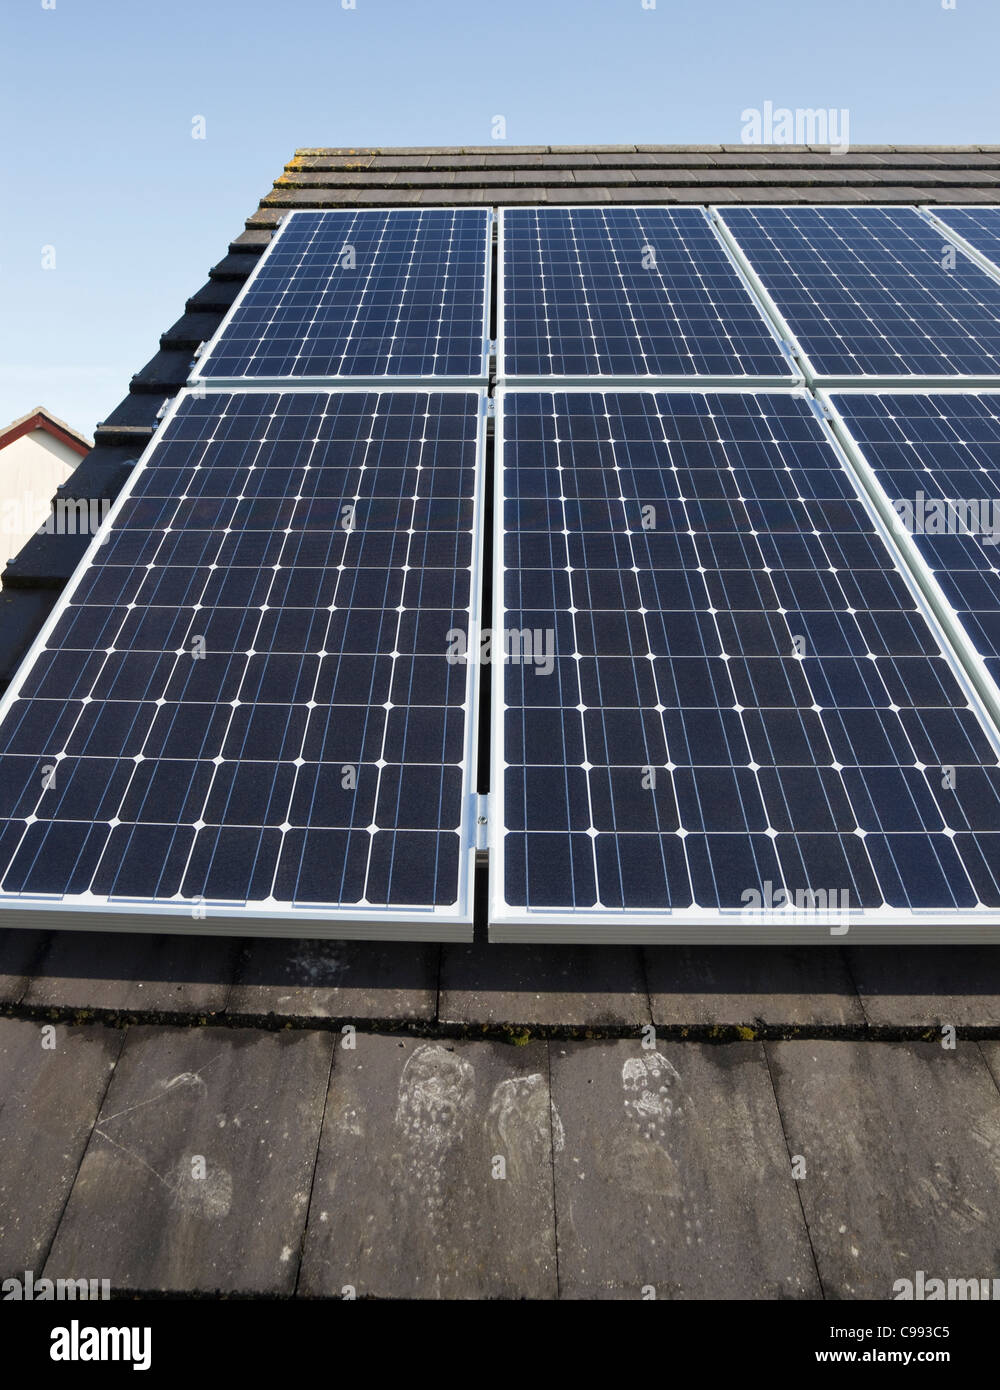 UK, Britain, Europe. Close-up of solar panels on a house roof. - Stock Image